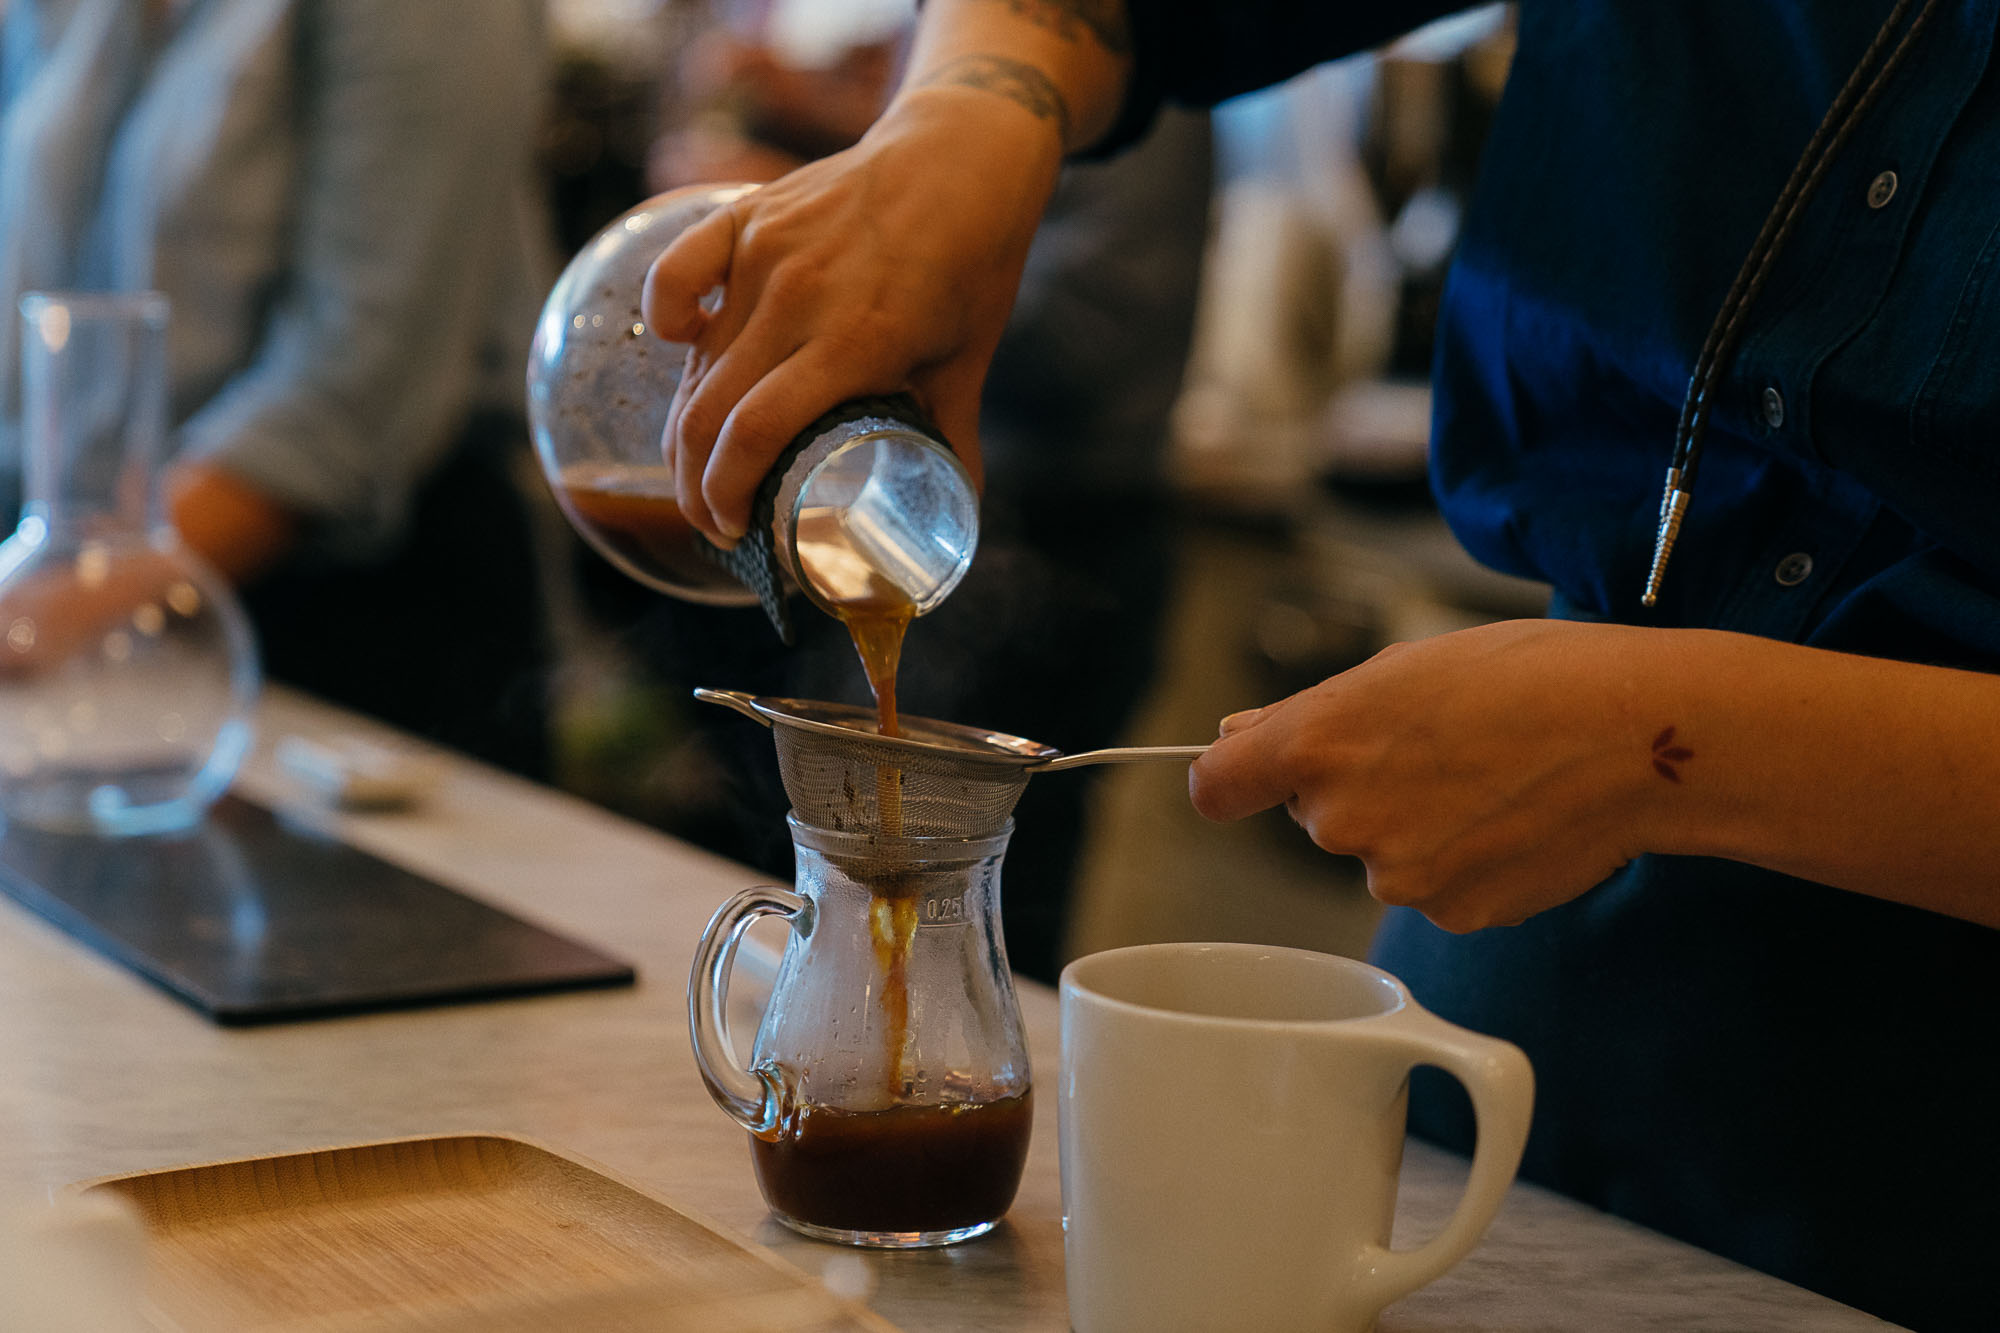 A pourover coffee at Boxcar Coffee Roasters in Boulder, Colorado as part of the Dirt Road Travels city guide.